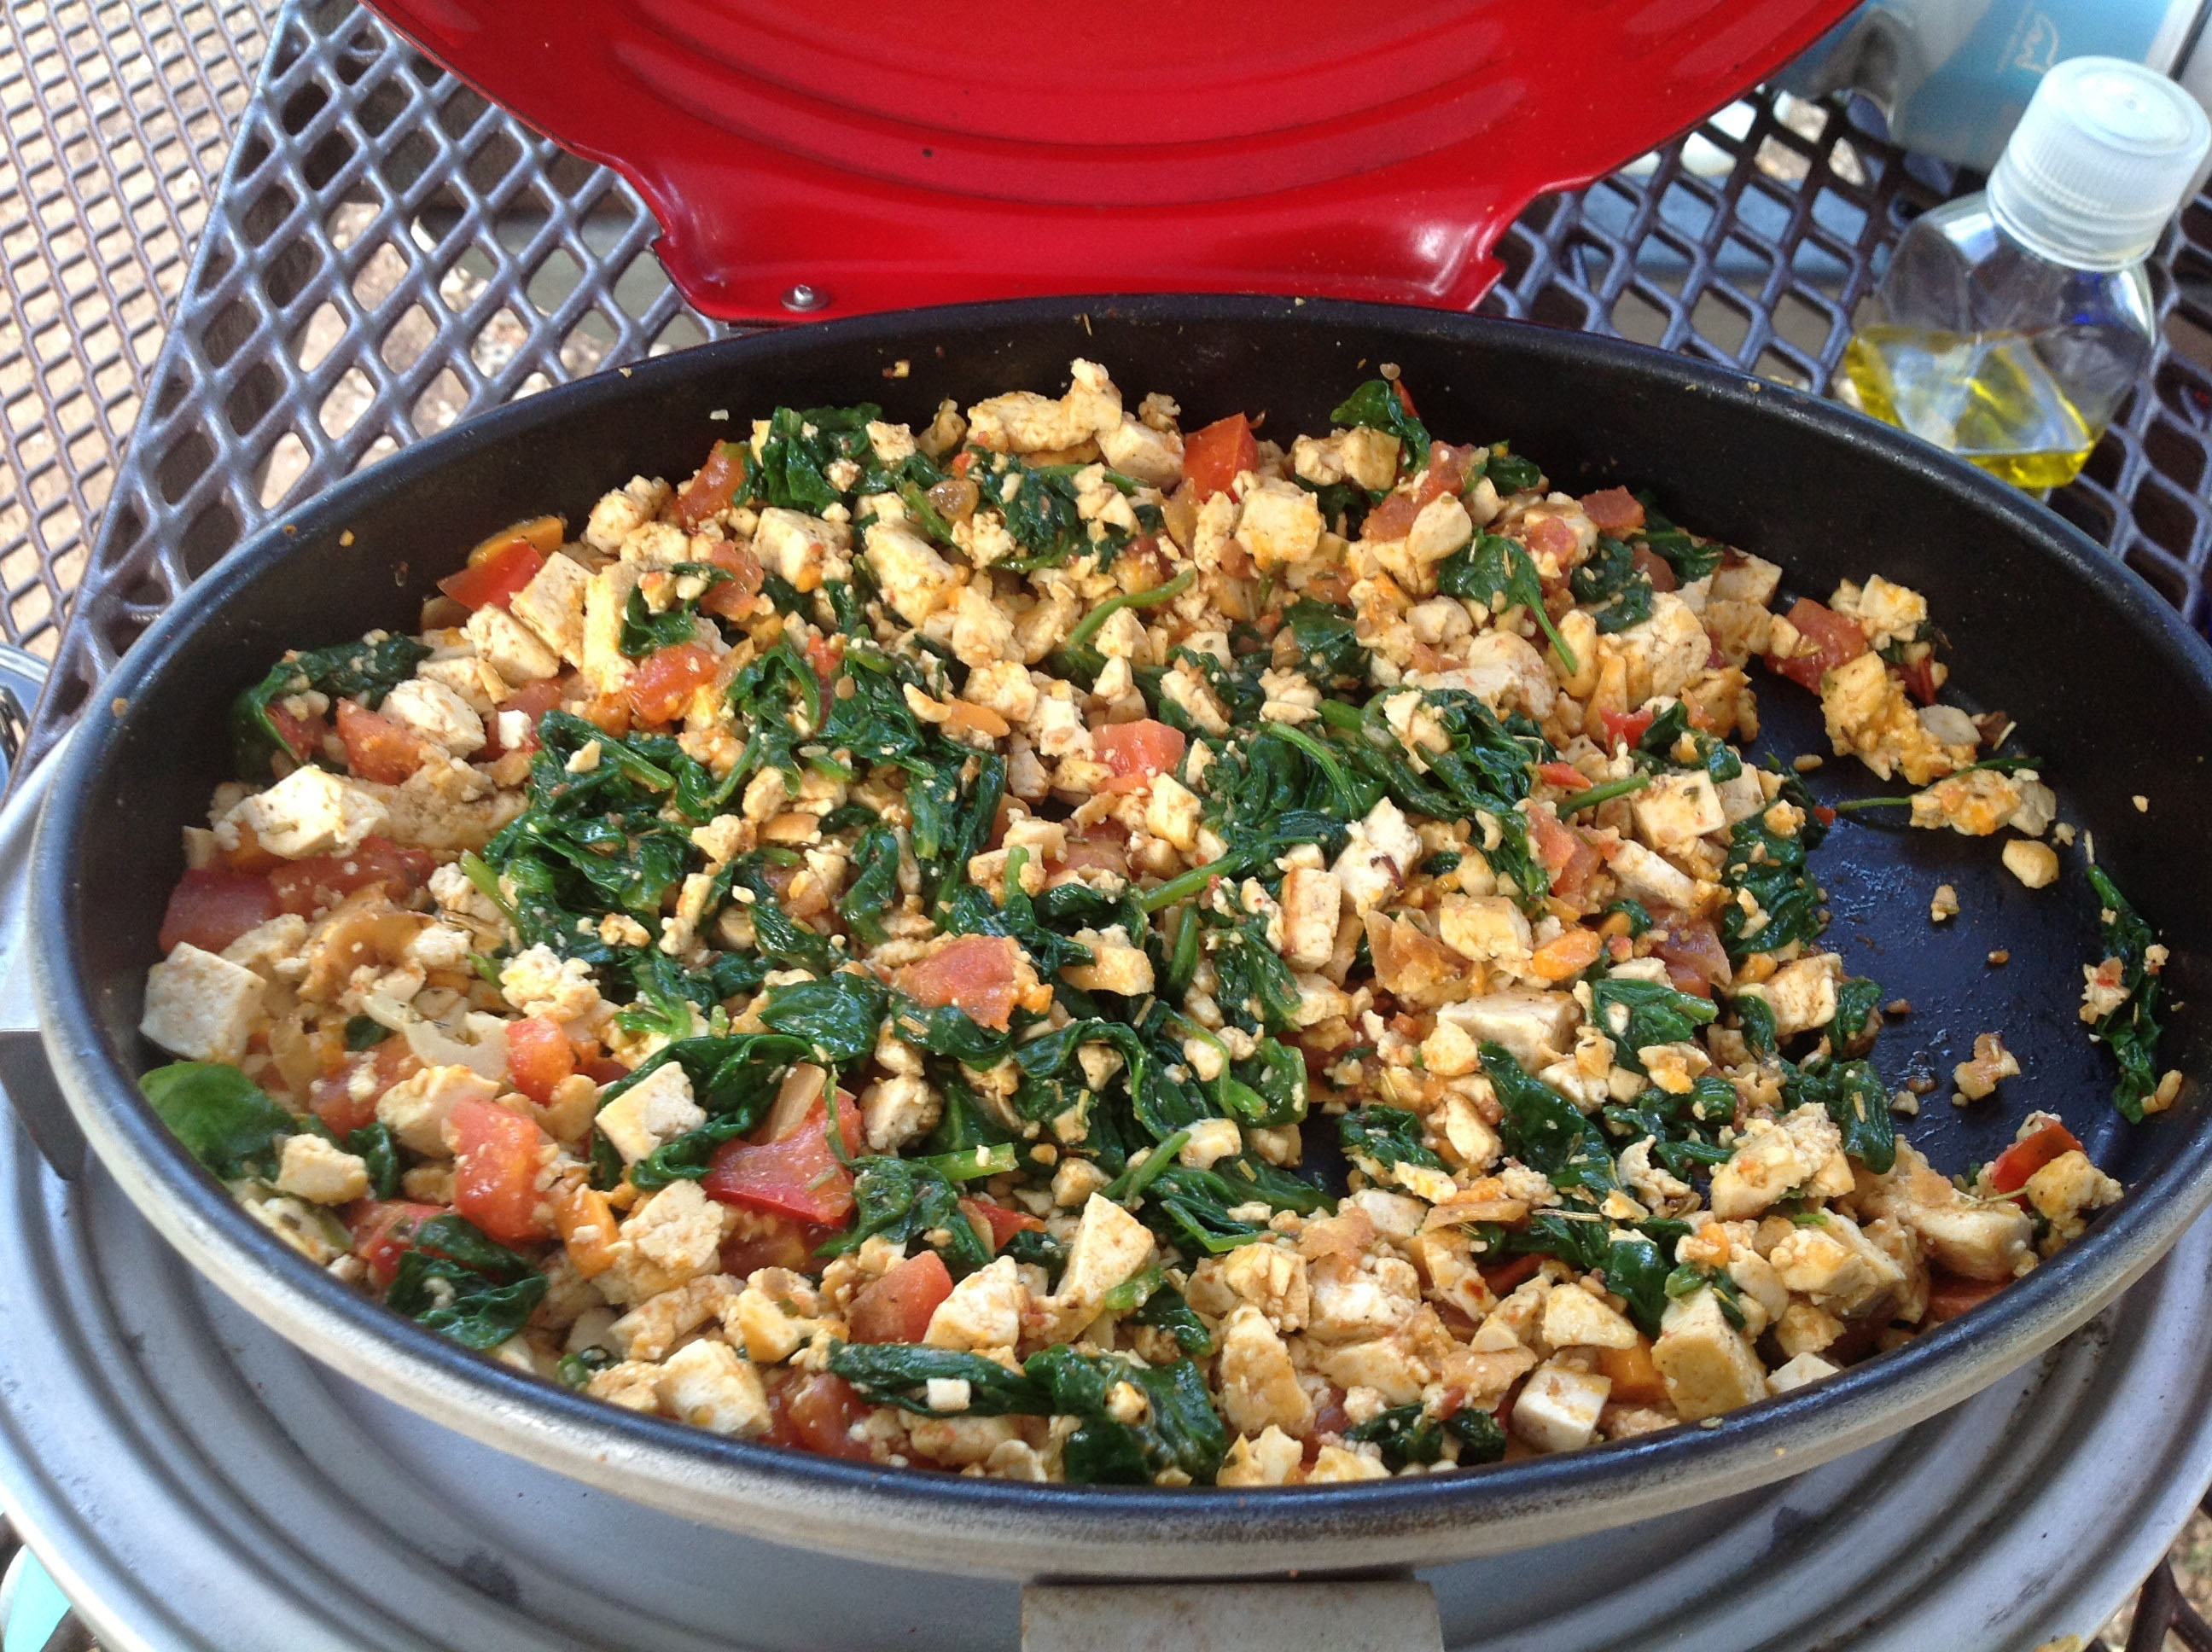 Finished Tofu Scramble